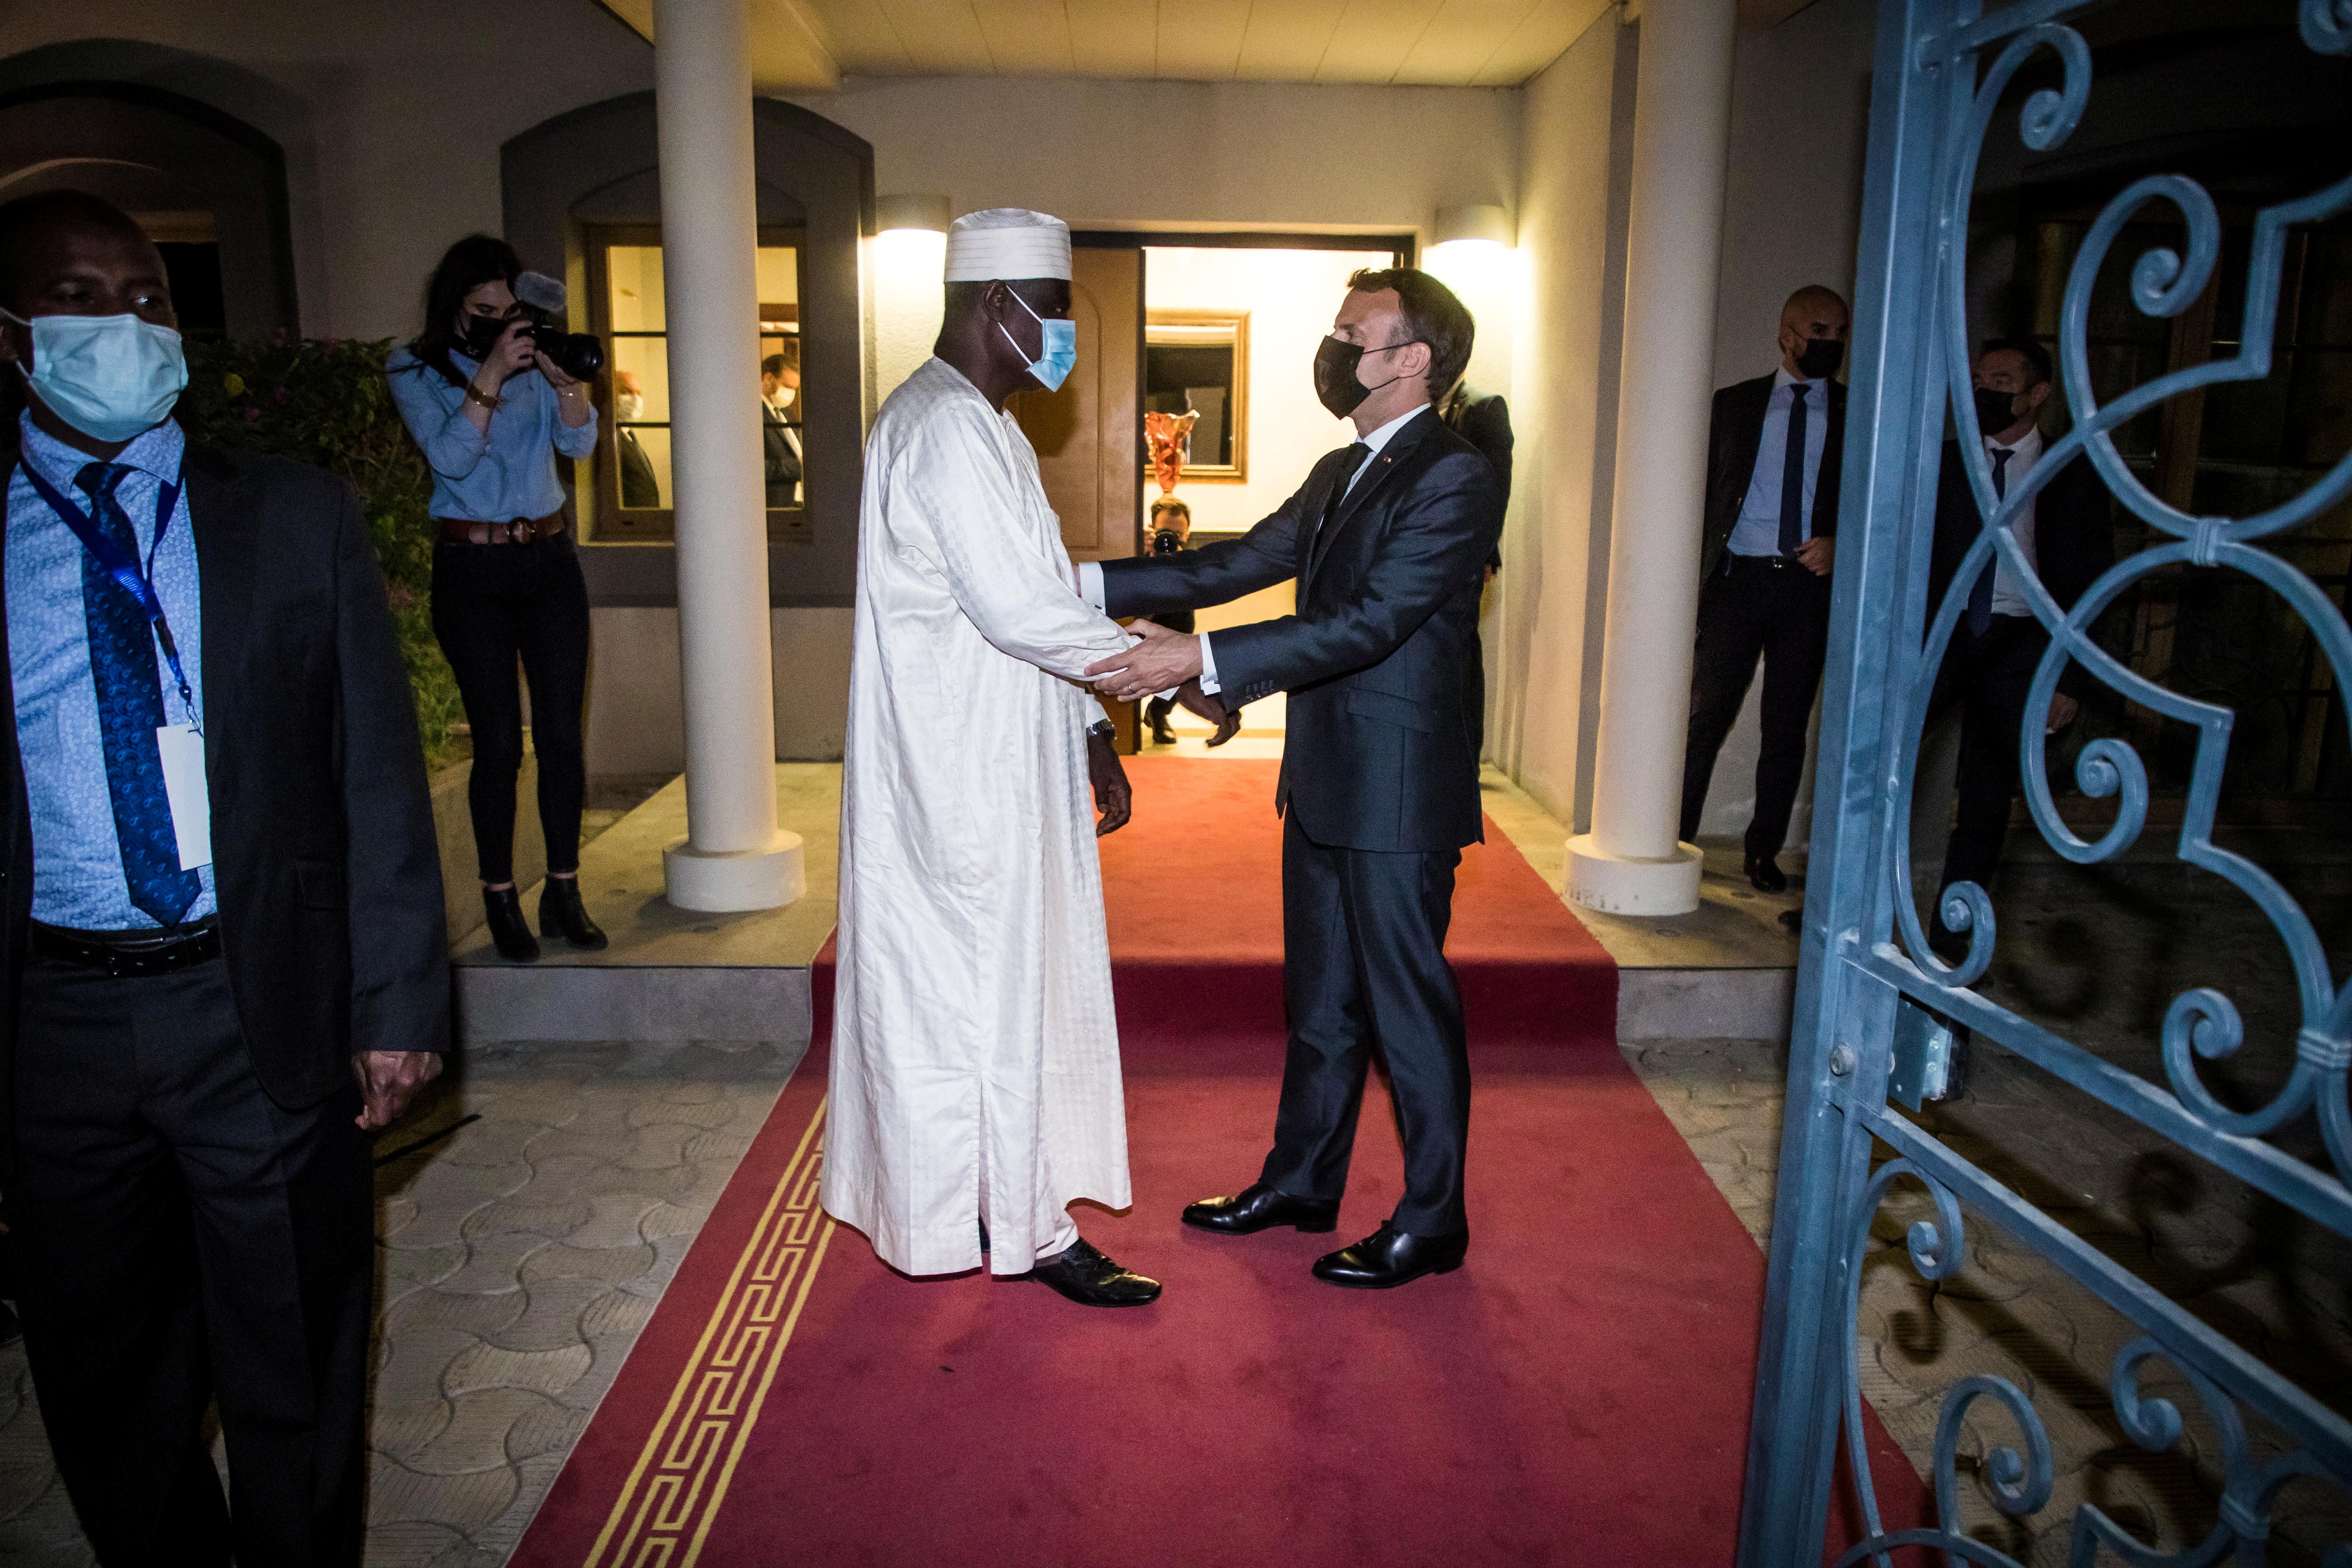 French President Emmanuel Macron greets Chairman of the African Union Commission Moussa Faki Mahamat after a meeting with African leaders of the Sahel countries as part of the funerals of Chad's President Idriss Deby in N'Djamena, Chad, April 22, 2021. Christophe Petit Tesson/Pool via REUTERS